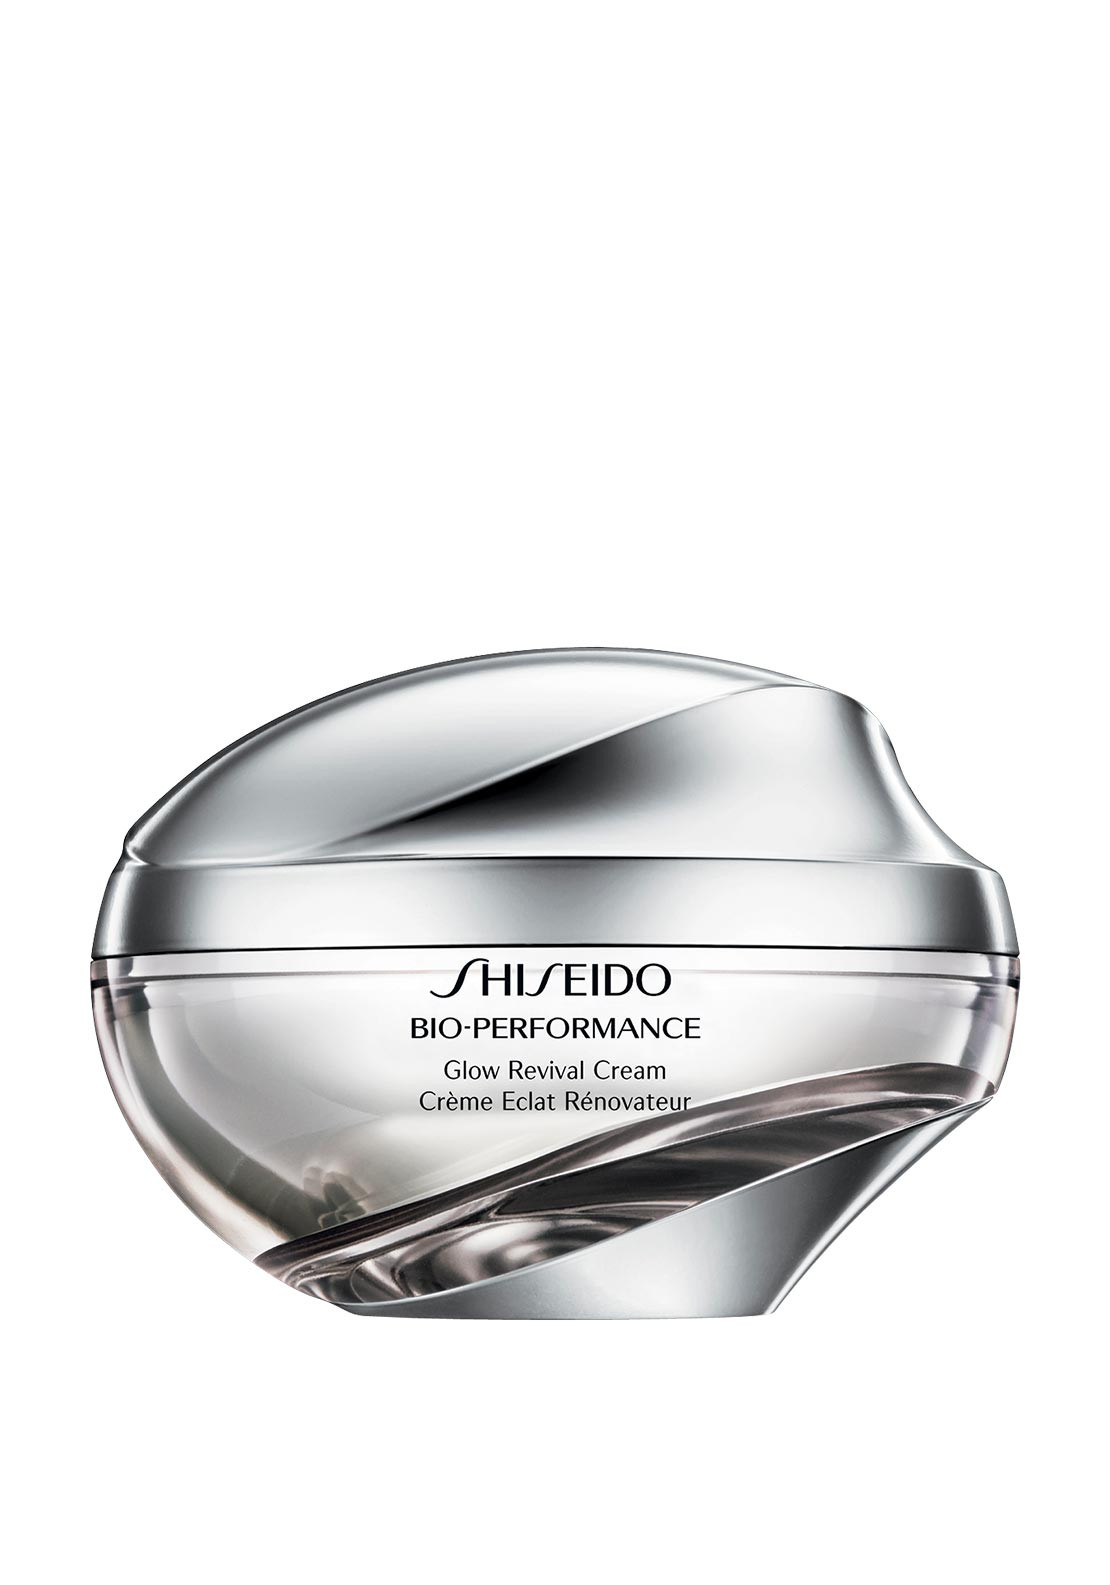 Shiseido Bio-Performance Glow Revival Cream, 75ml